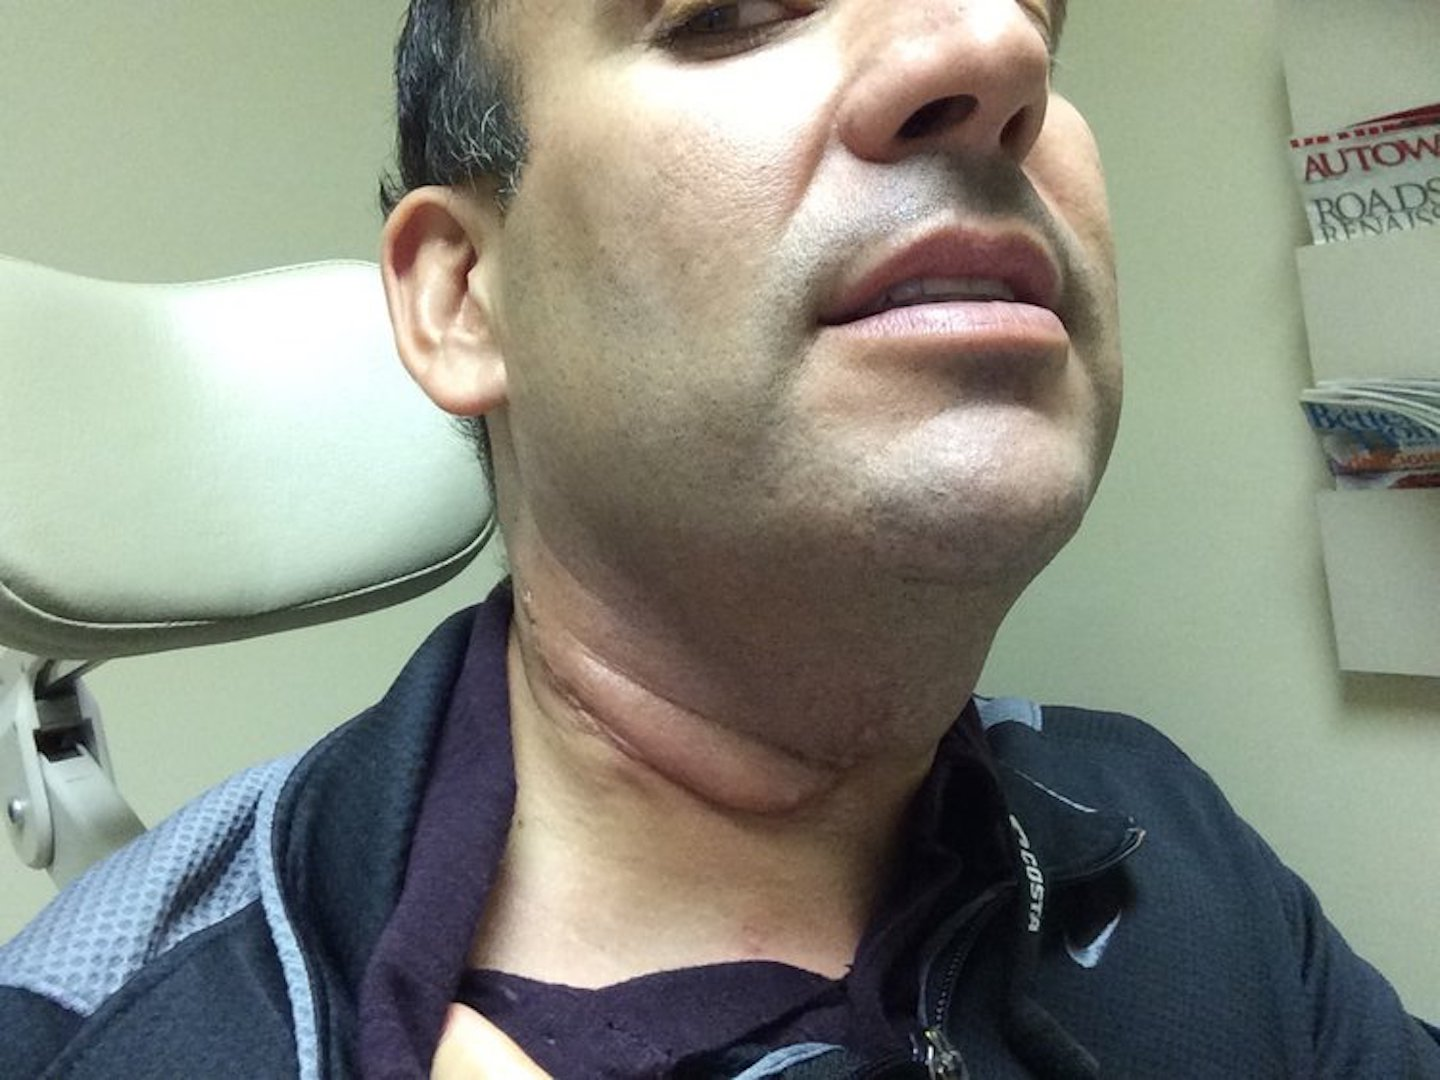 does hpv virus cause throat cancer)